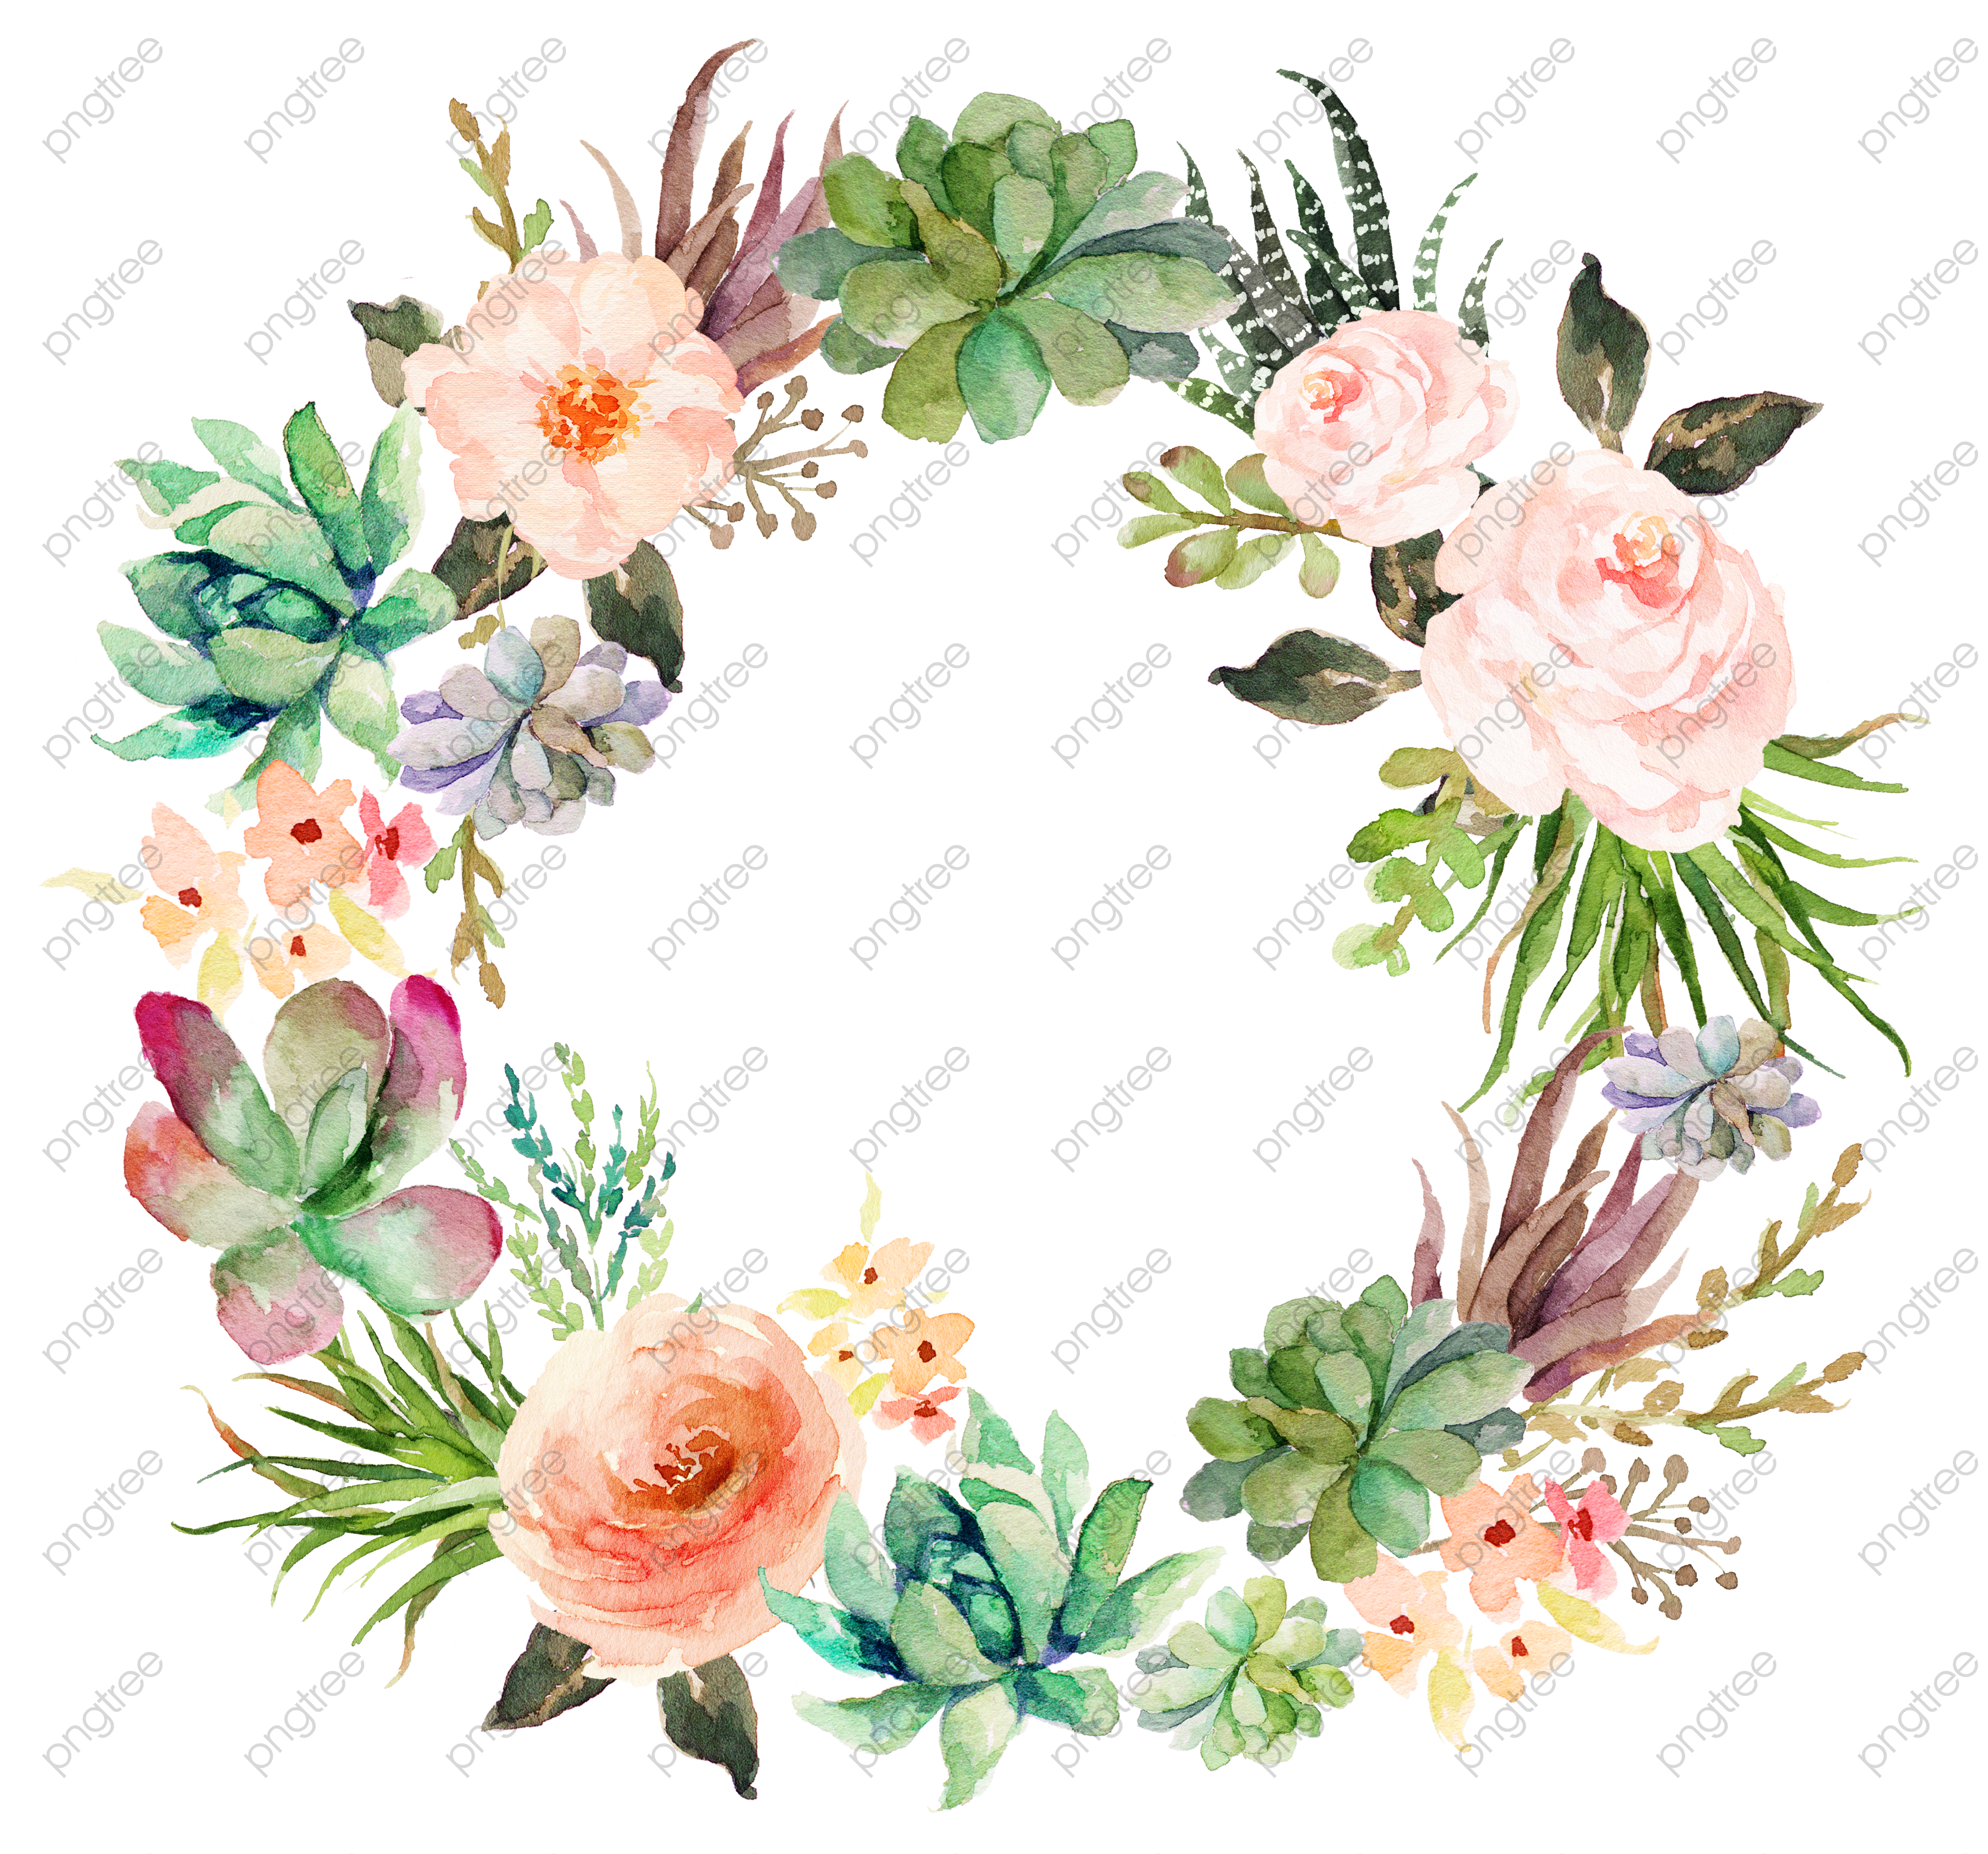 Garland clipart pink and wine no background vector library library Transparent beautiful pink fresh garland wreath PNG Format Image ... vector library library